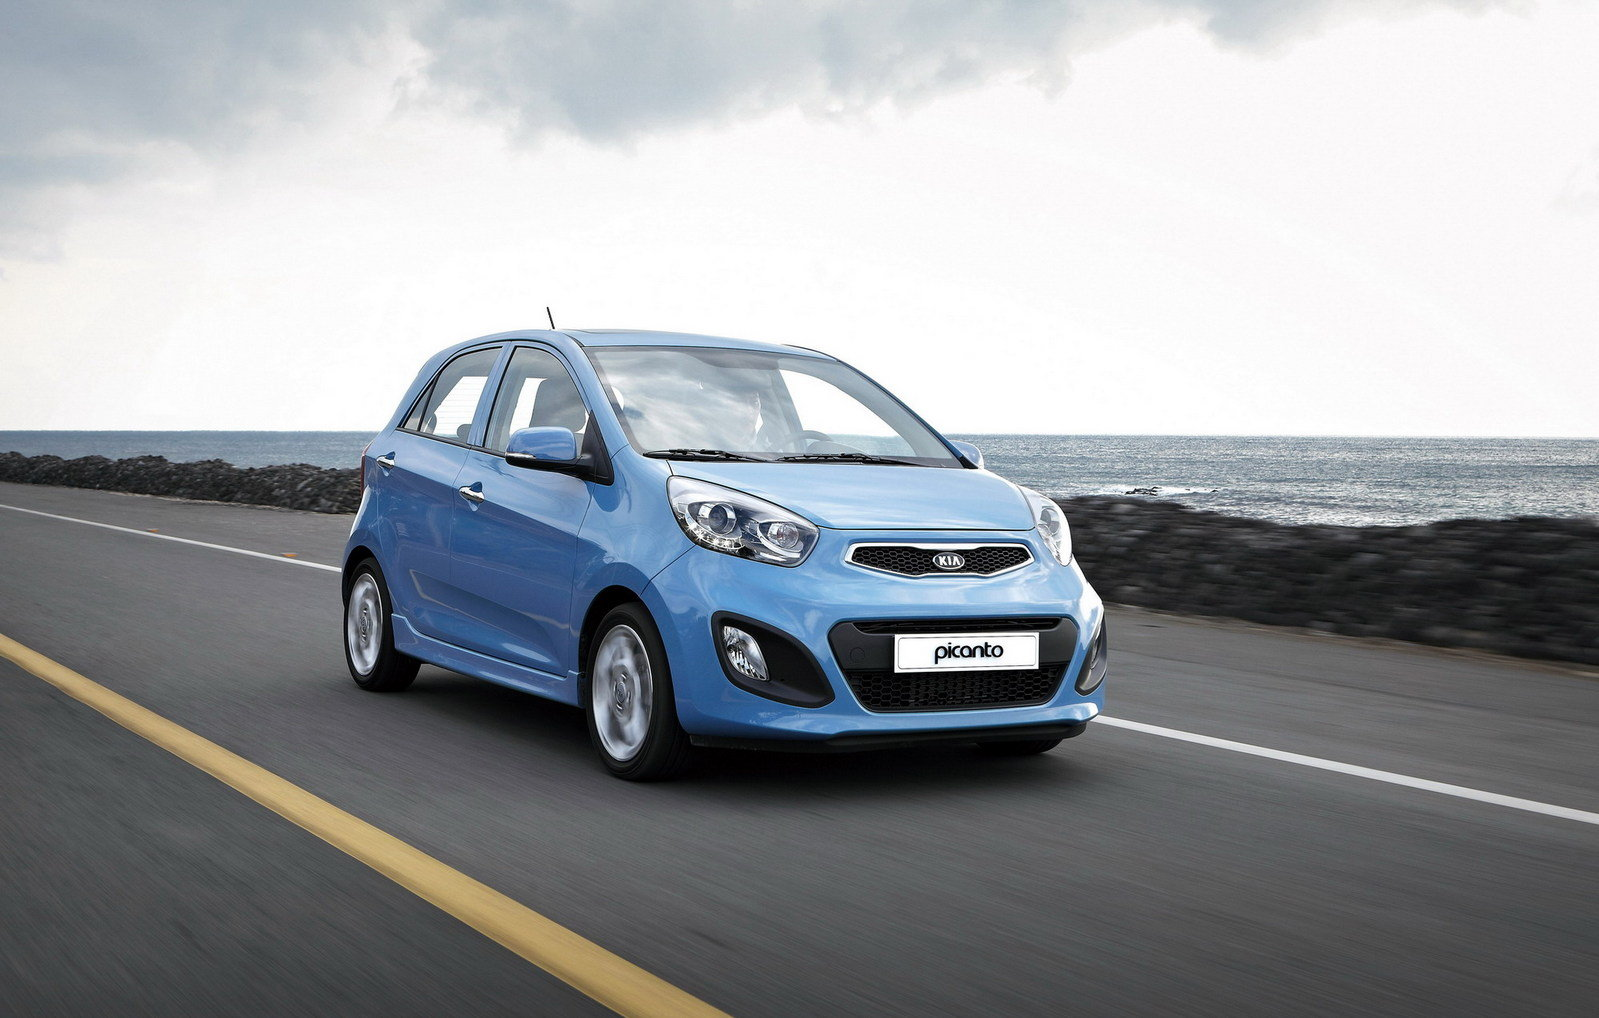 2012 kia picanto picture 396358 car review top speed. Black Bedroom Furniture Sets. Home Design Ideas